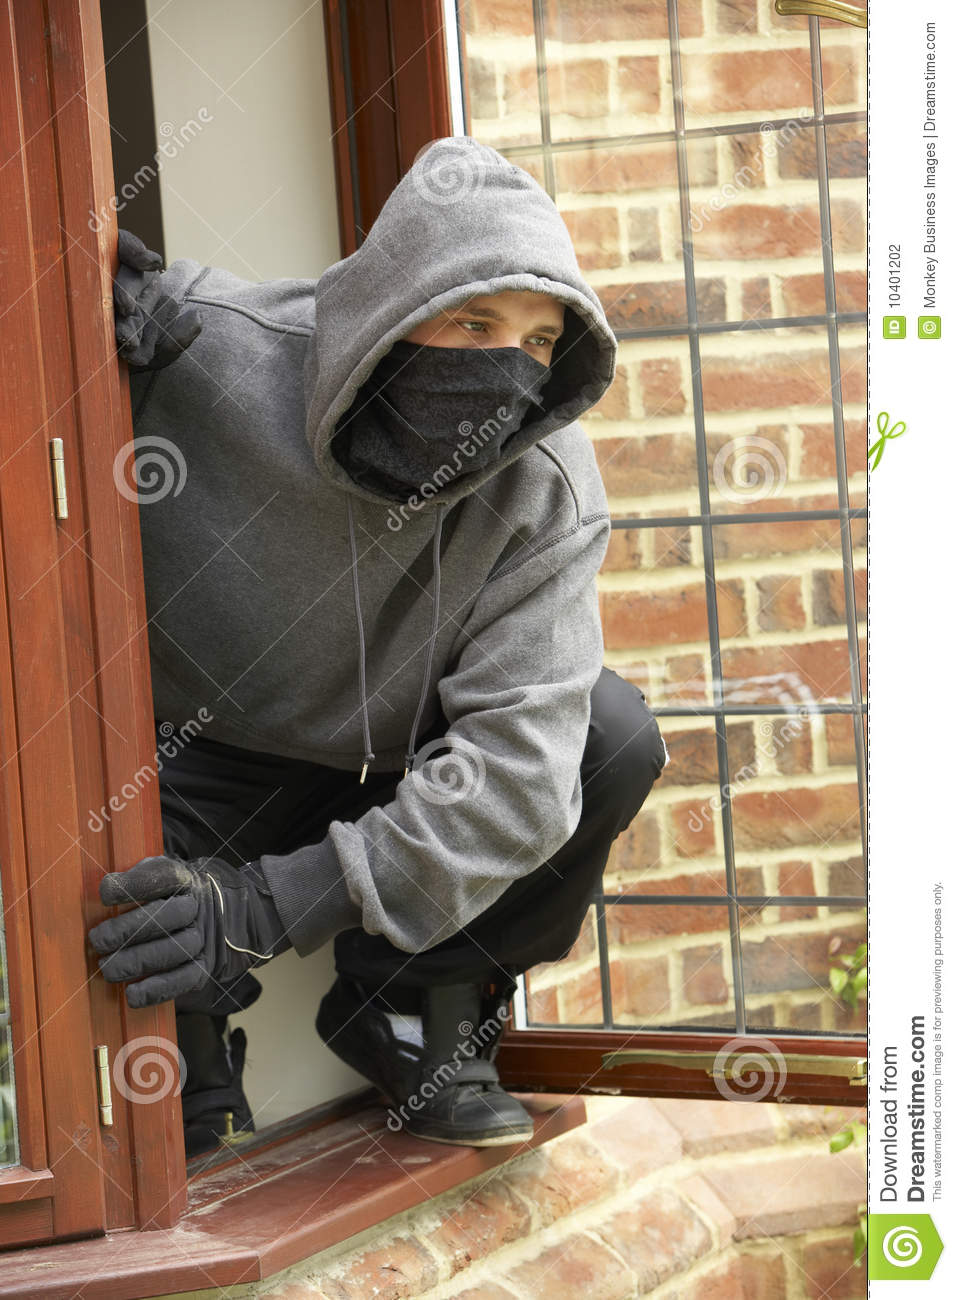 Young Man Breaking Into House Stock Photography Image